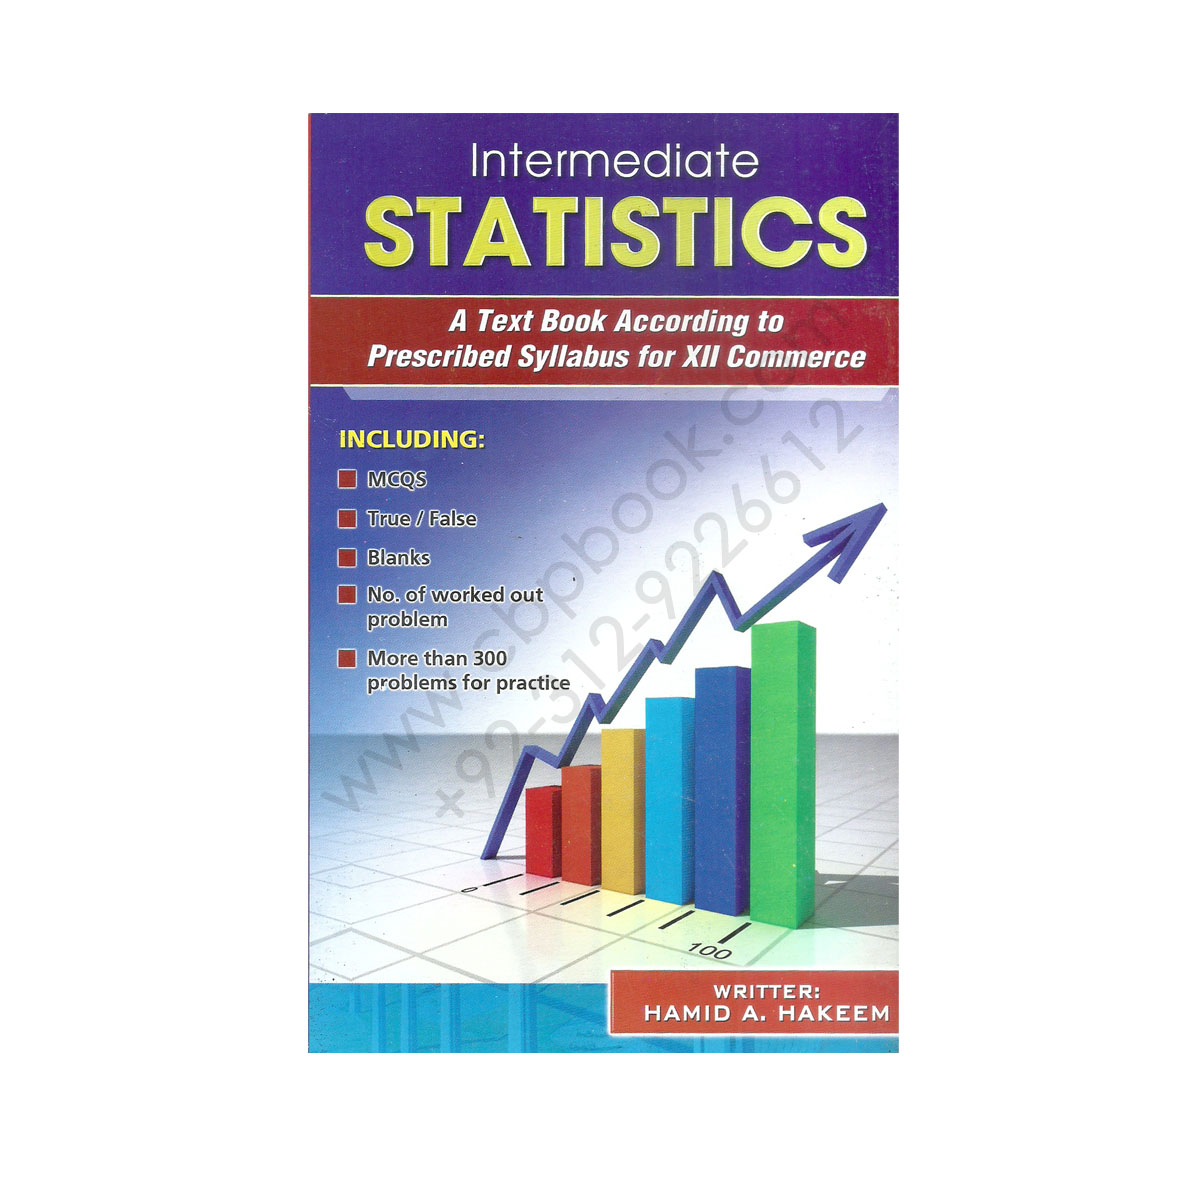 Intermediate Statistics Text Book For 2nd Year By Hamid A Hakeem